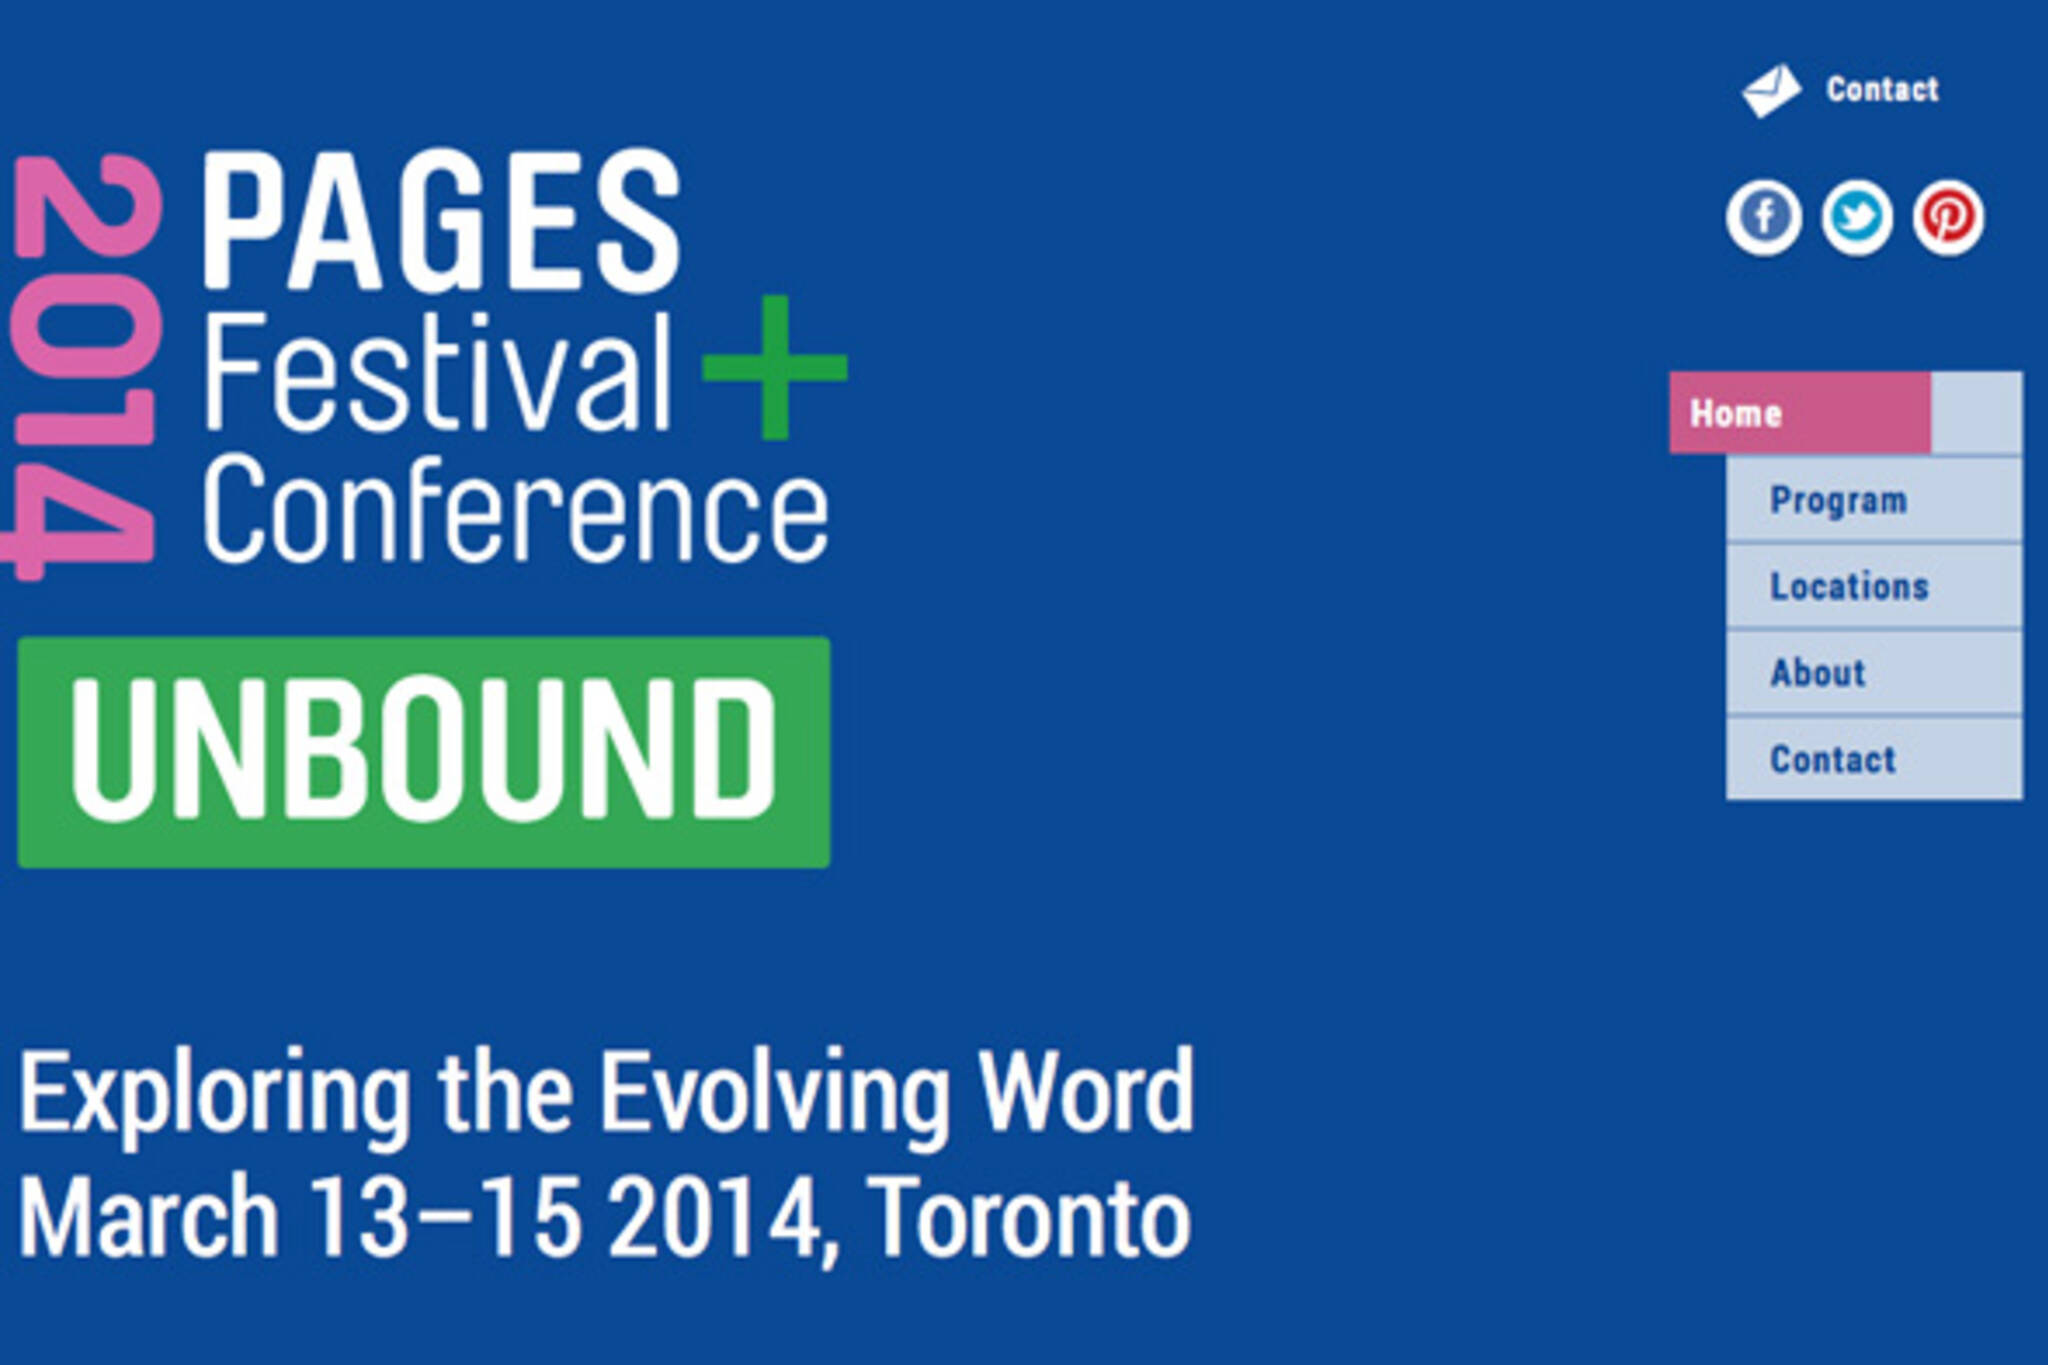 Pages Festival Toronto